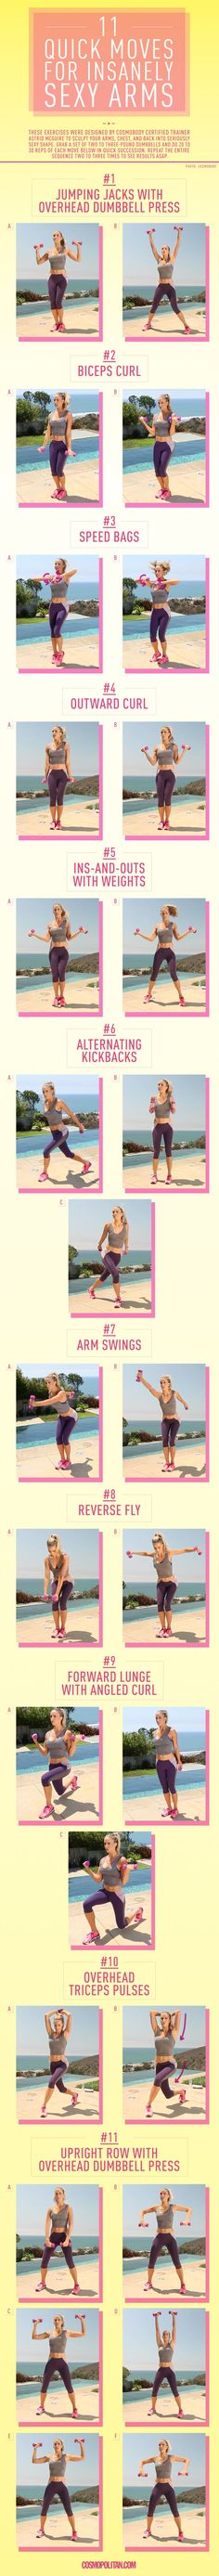 11 Quick Moves for an Insanely Sexy Back and Arms - You won't know what hit you.